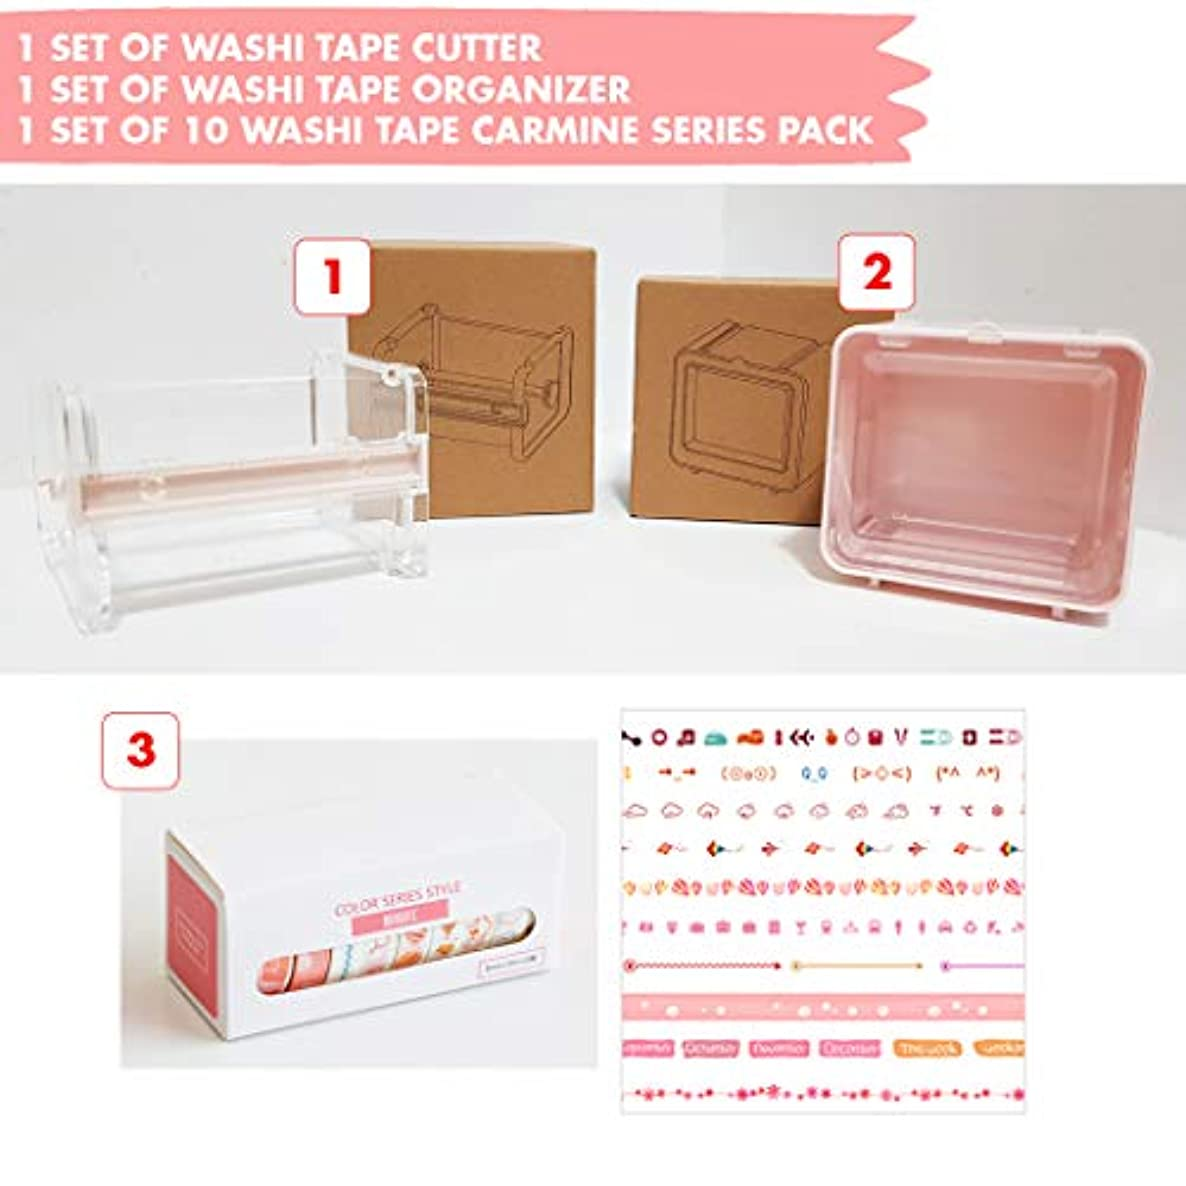 Clear Acrylic Craft Dispenser and Washi Tape Storage Case with 10 pcs Decorative Washi Tape Series for Office, School and Home Usage. Great for Planners, Arts, Crafts (Carmine Red)